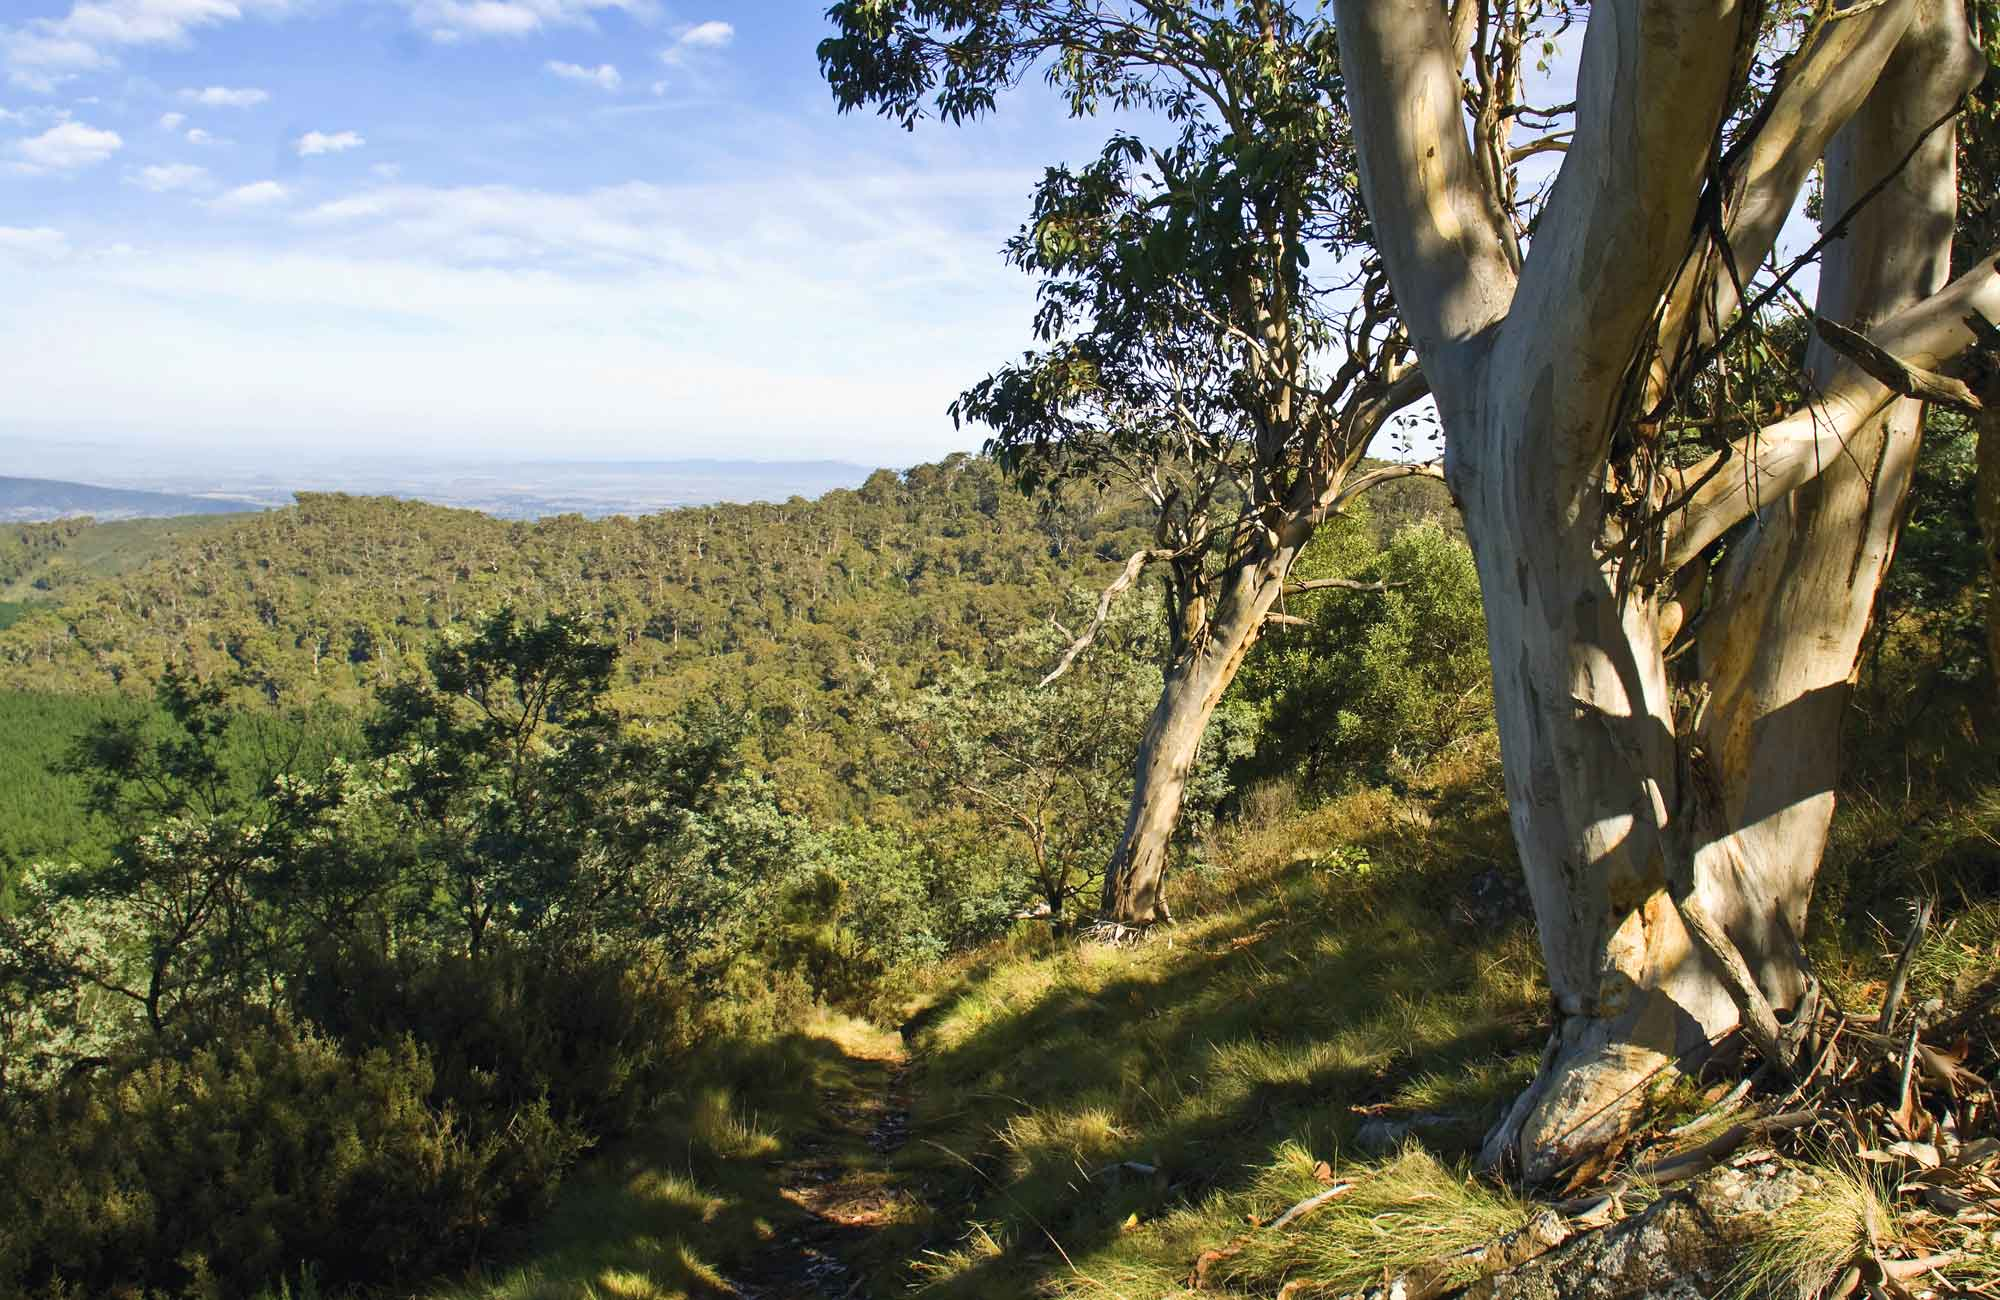 Landscape in Mount Canobolas State Conservation Area. Photo: Boris Hlavica